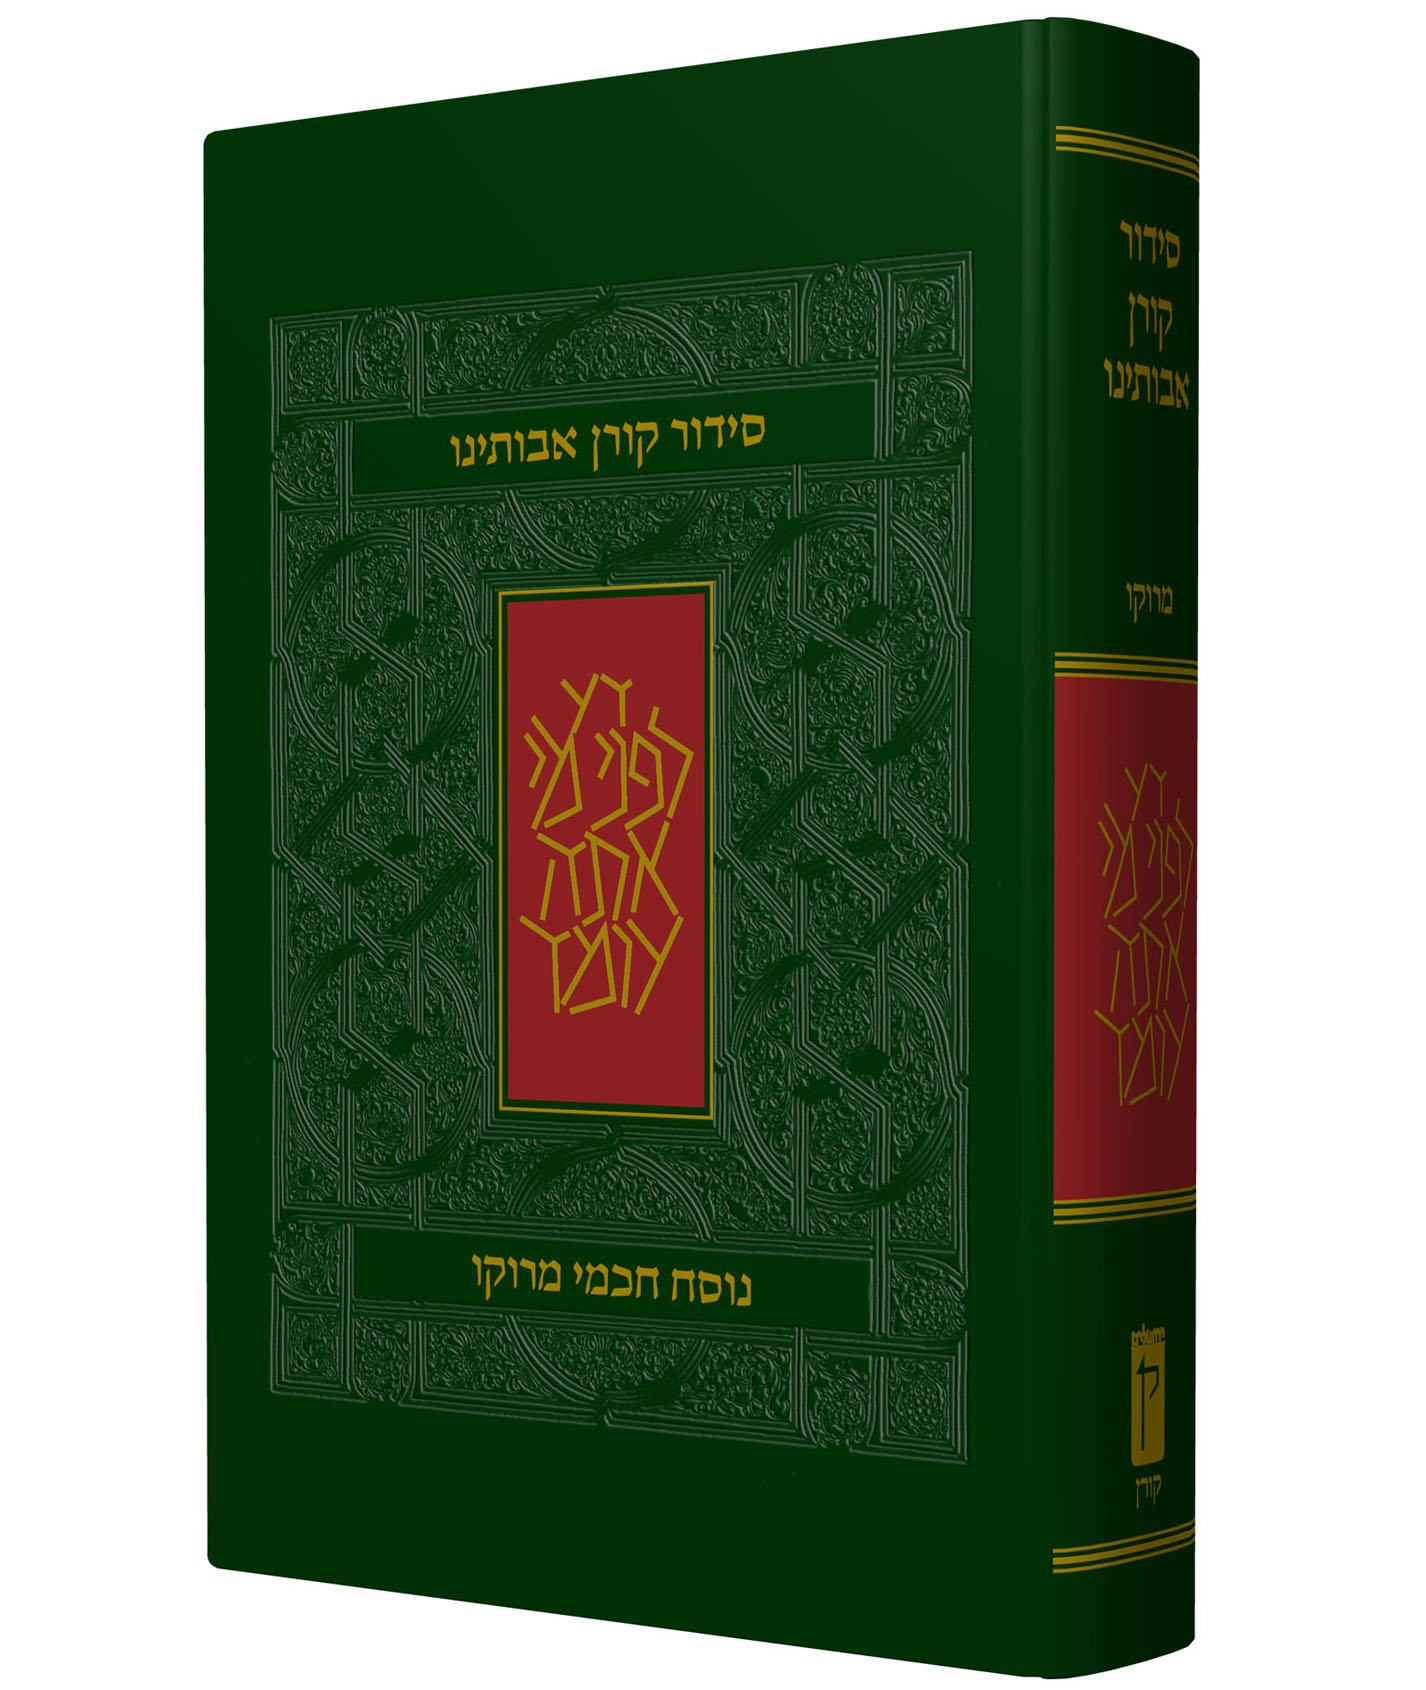 The Koren Avoteinu Siddur Compact Size: Prayer in the Moroccan Tradition